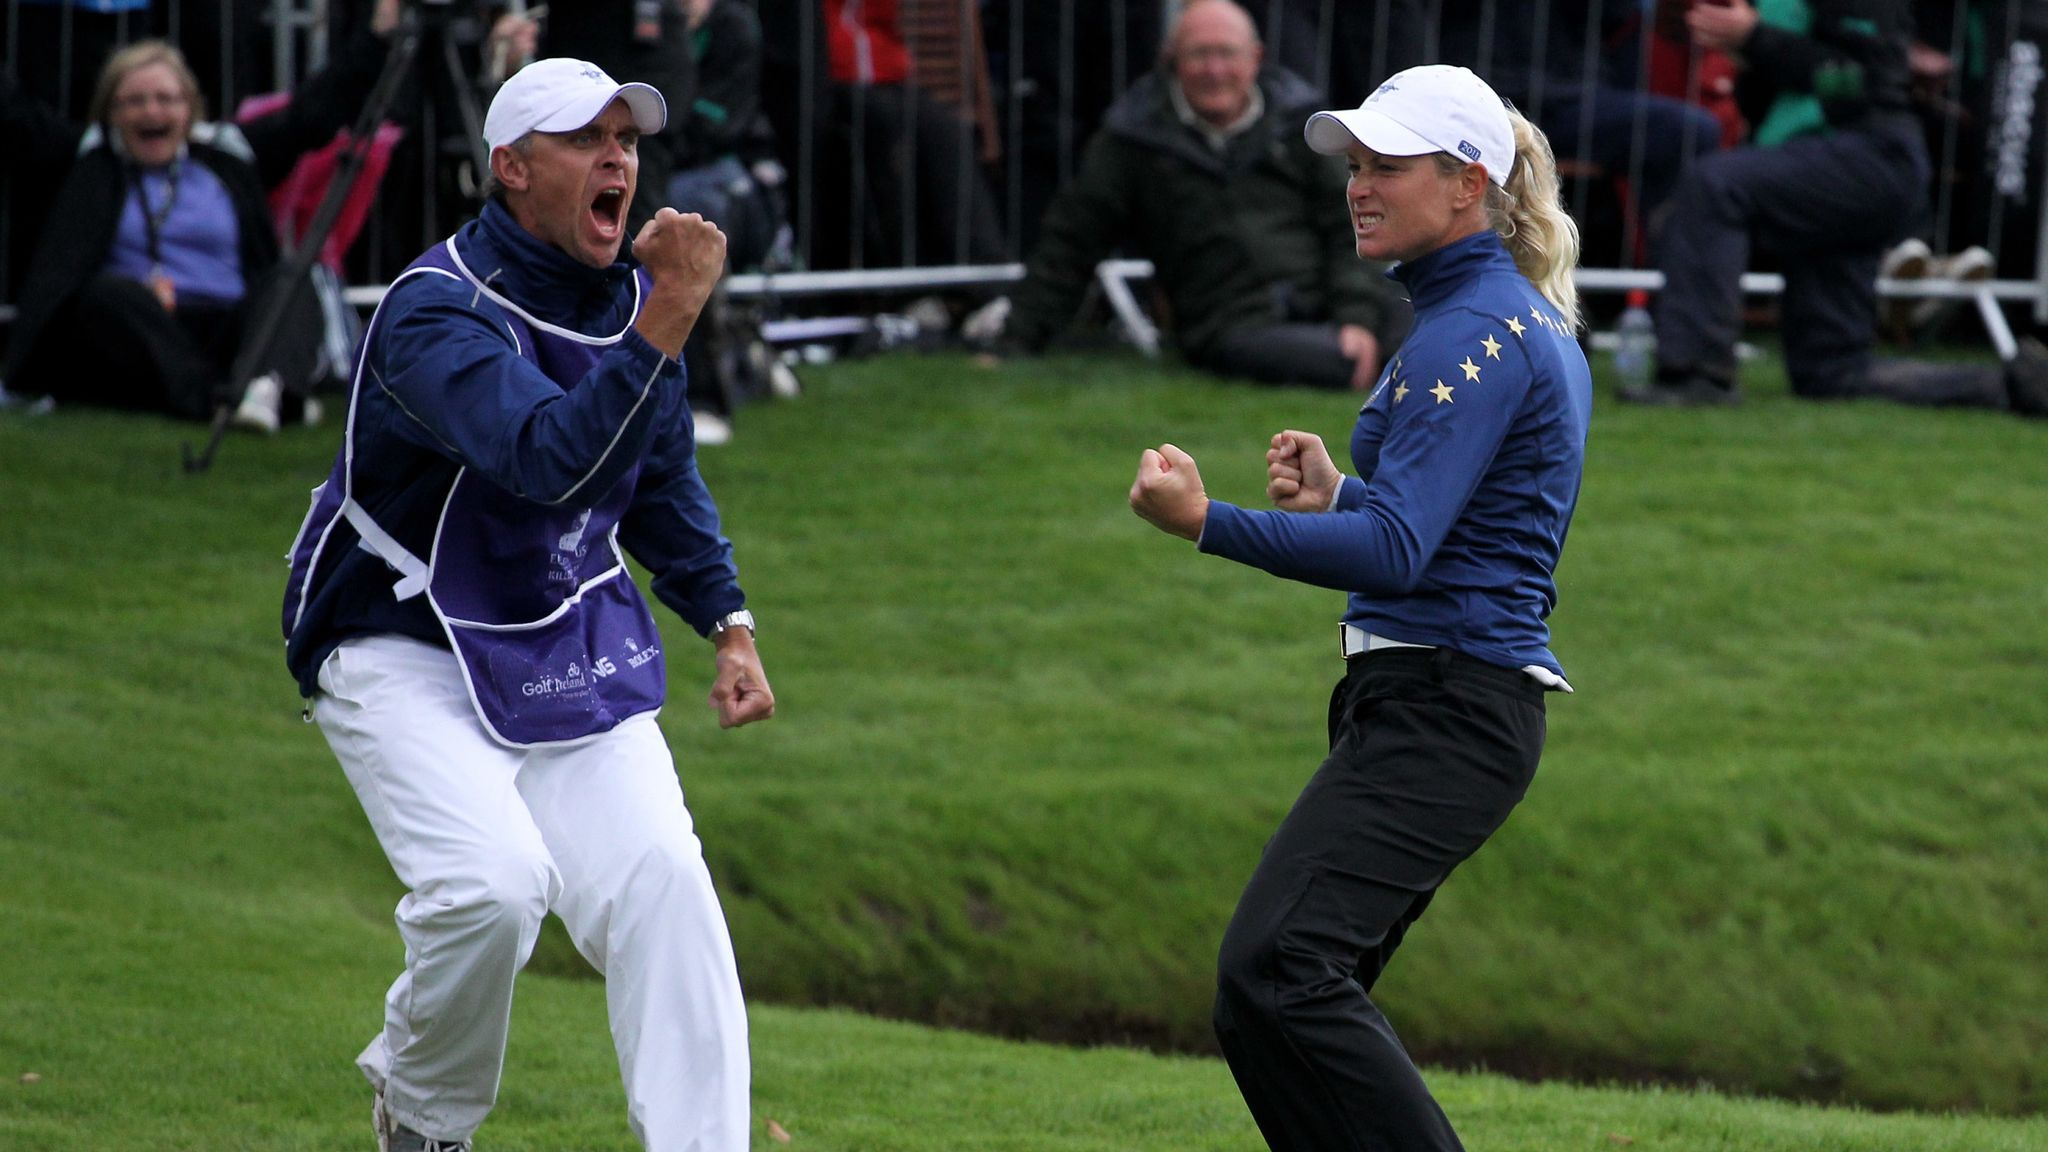 Solheim Cup stories: Suzann Pettersen helps Europe to 2011 victory